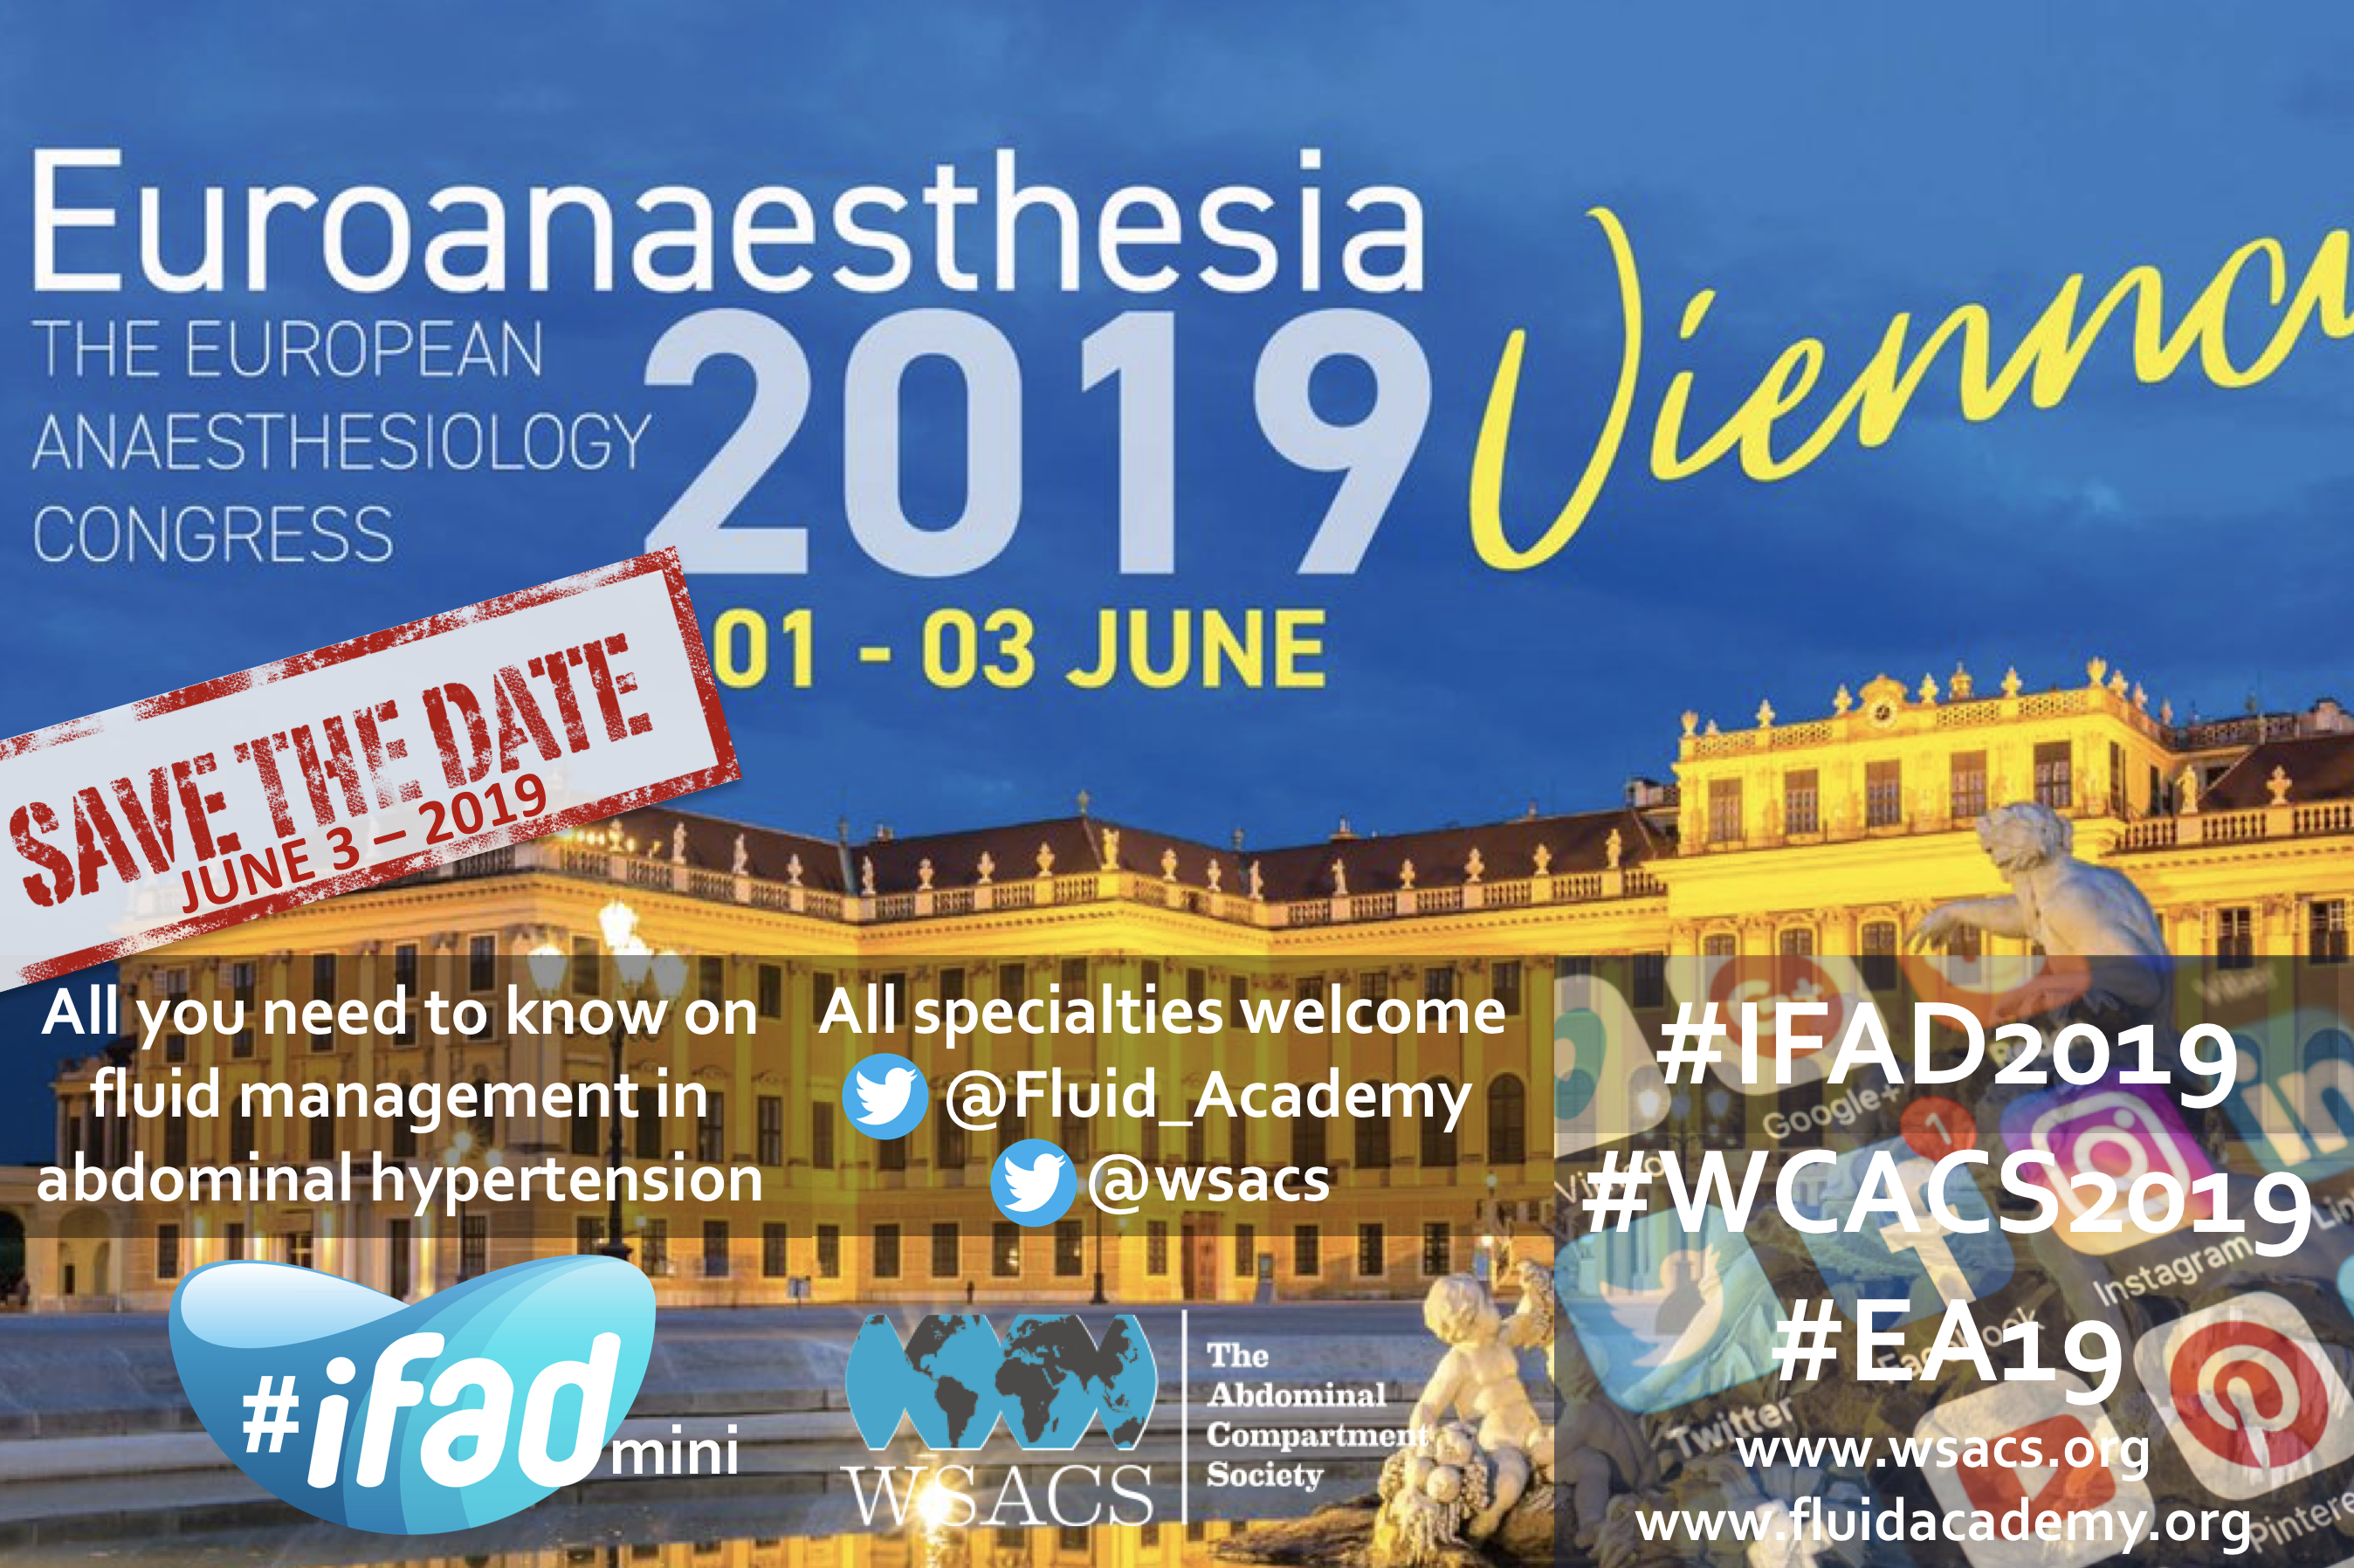 #iFADmini during #EA2019 Vienna Euroanesthesia 2019